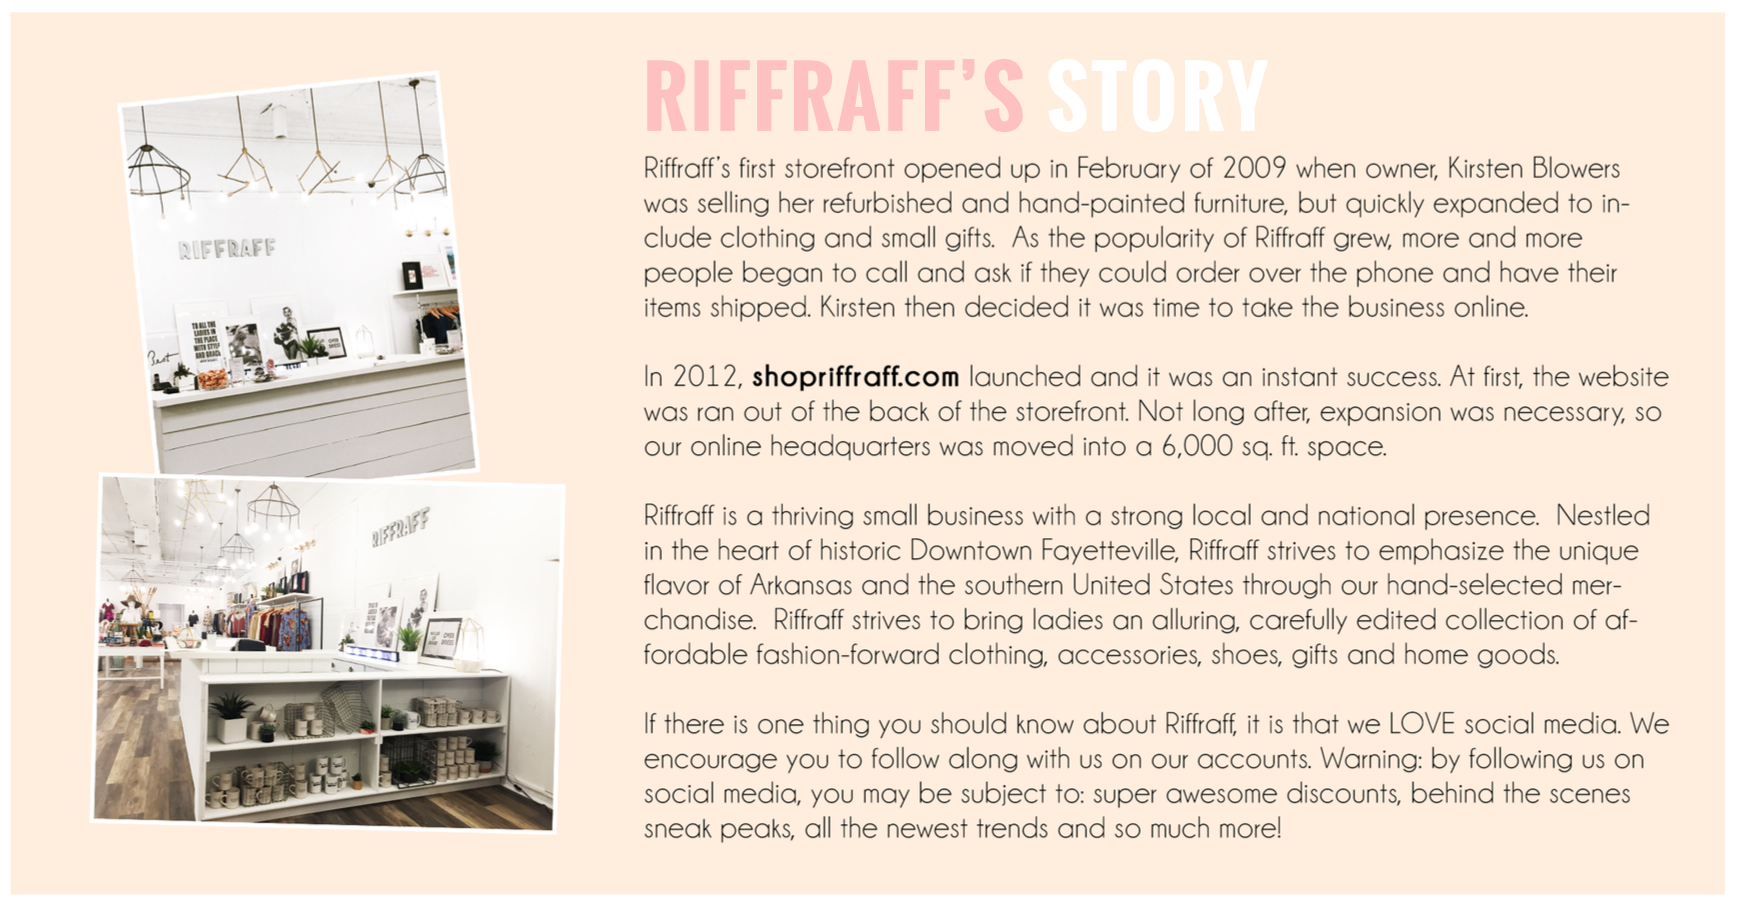 Riffraff's Story - About Us